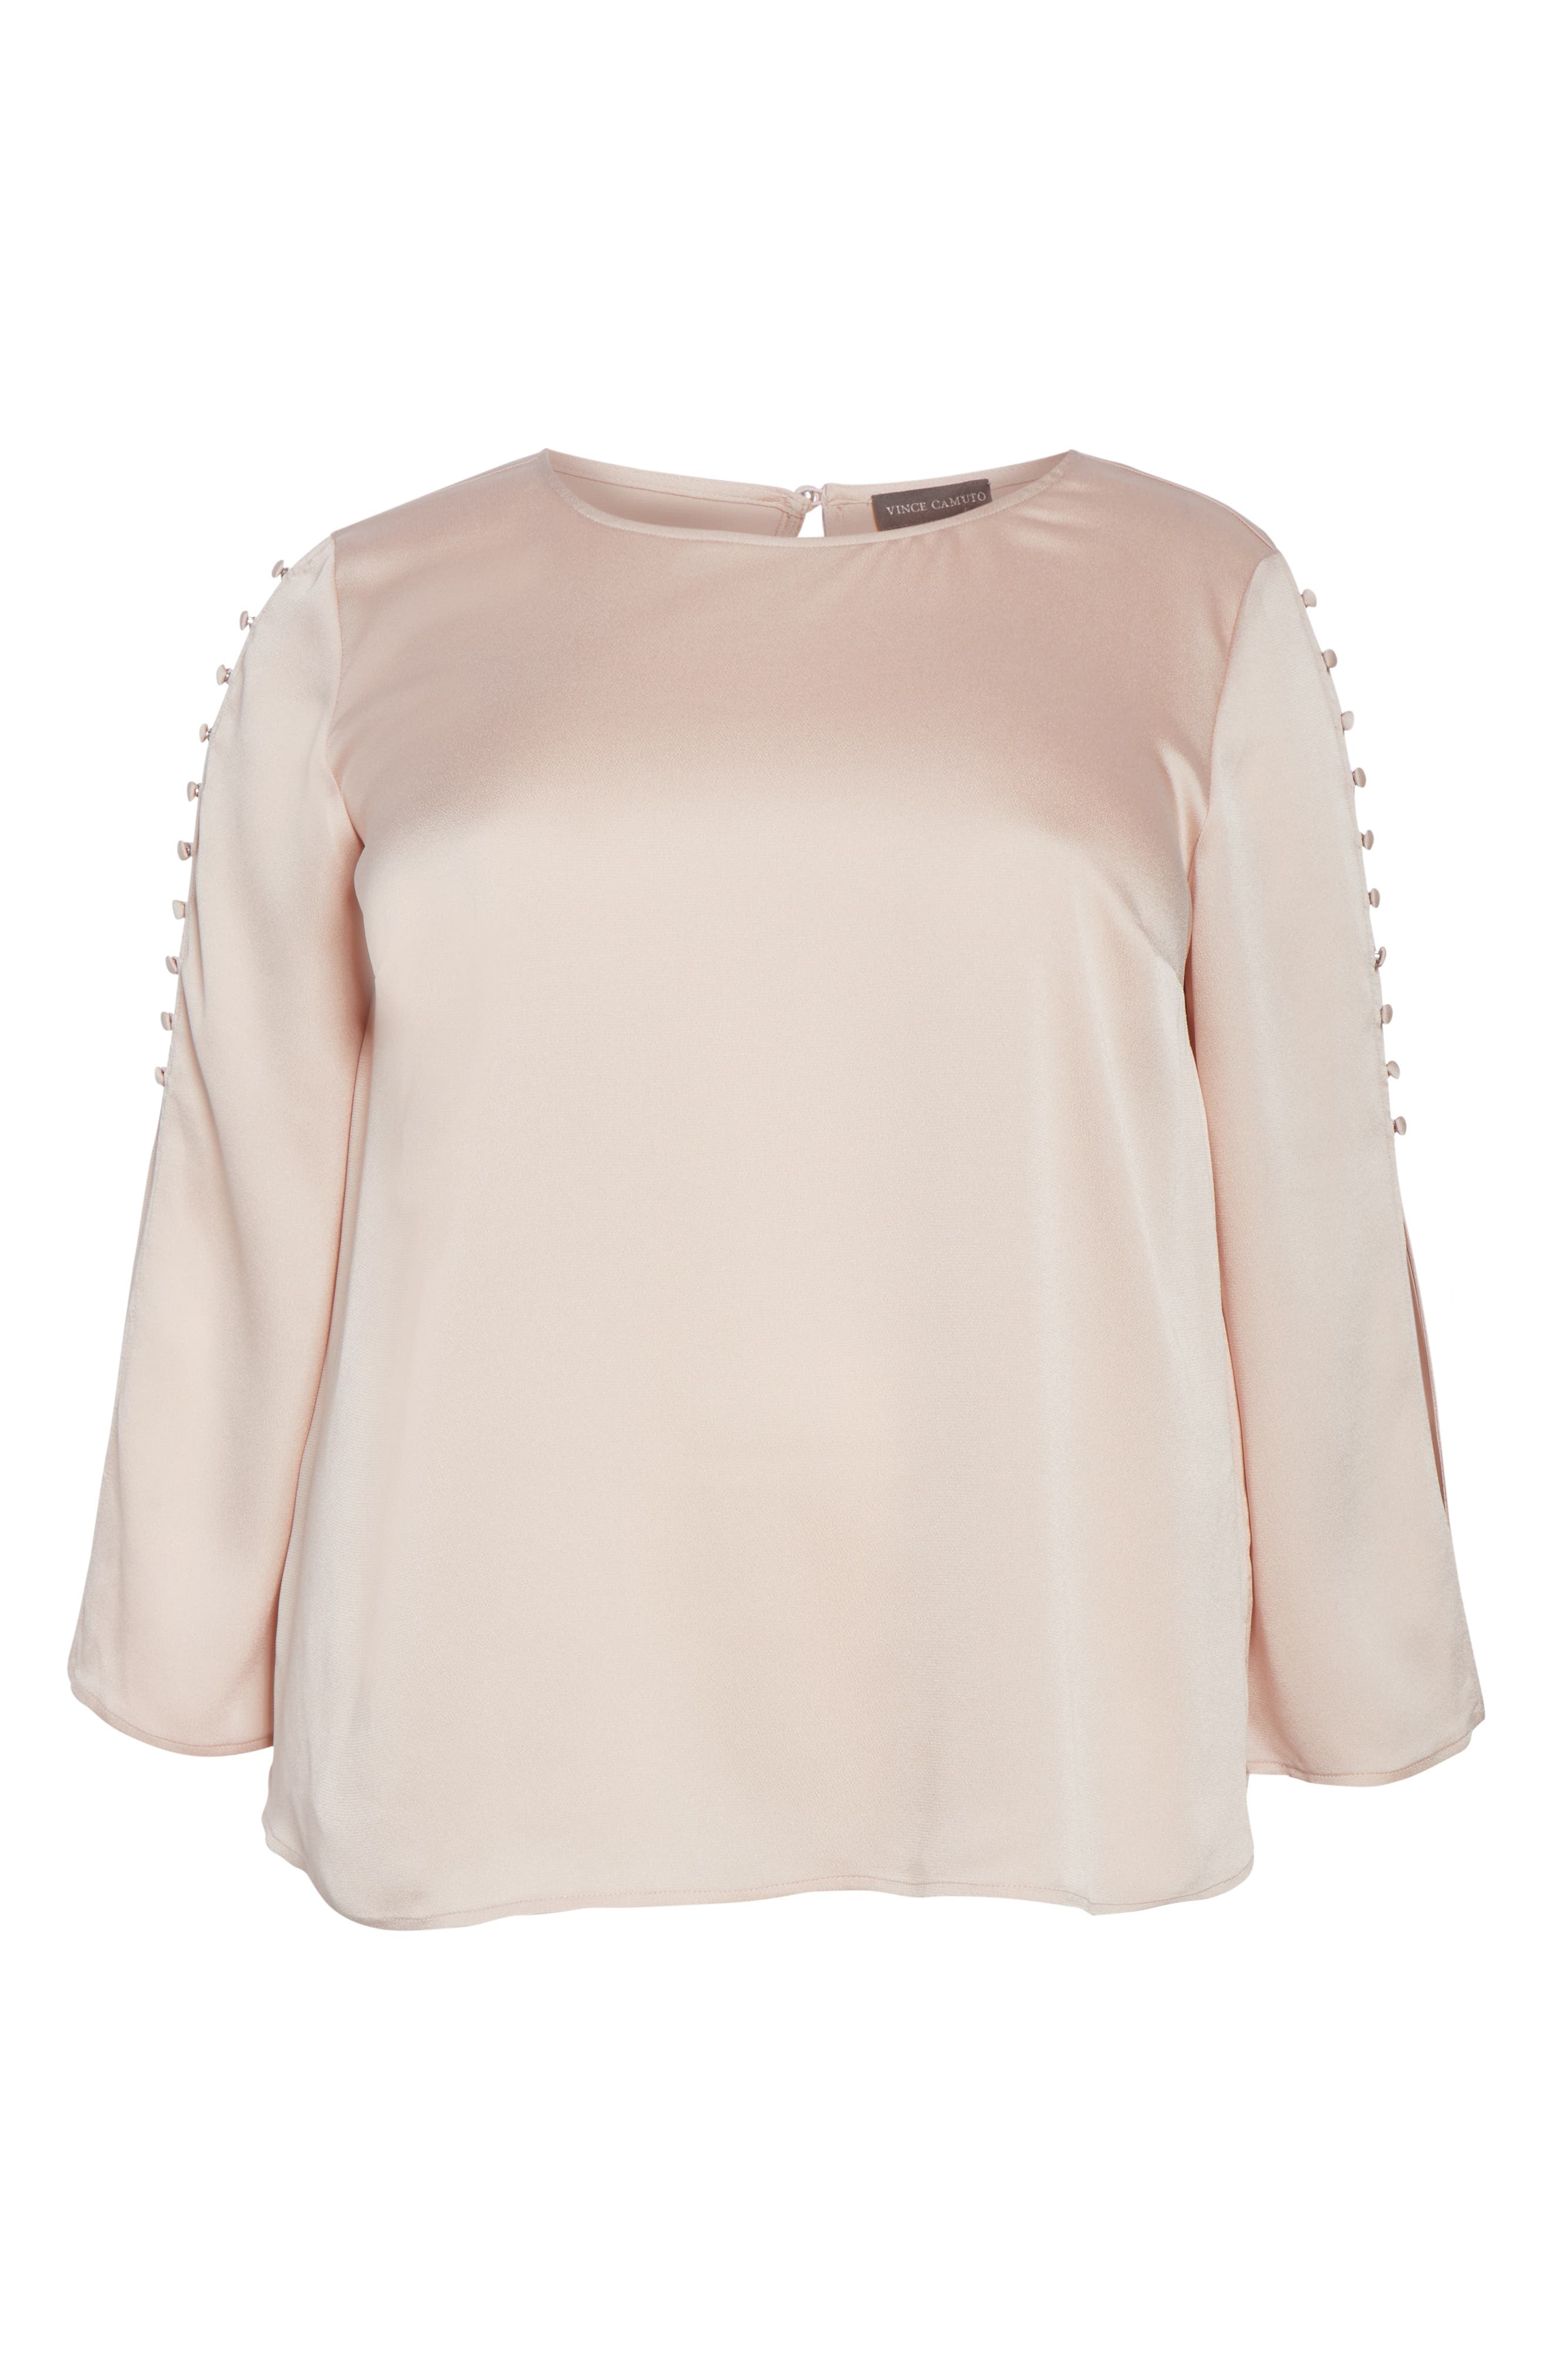 VINCE CAMUTO, Button Bell Sleeve Blouse, Alternate thumbnail 6, color, ROSE BUFF